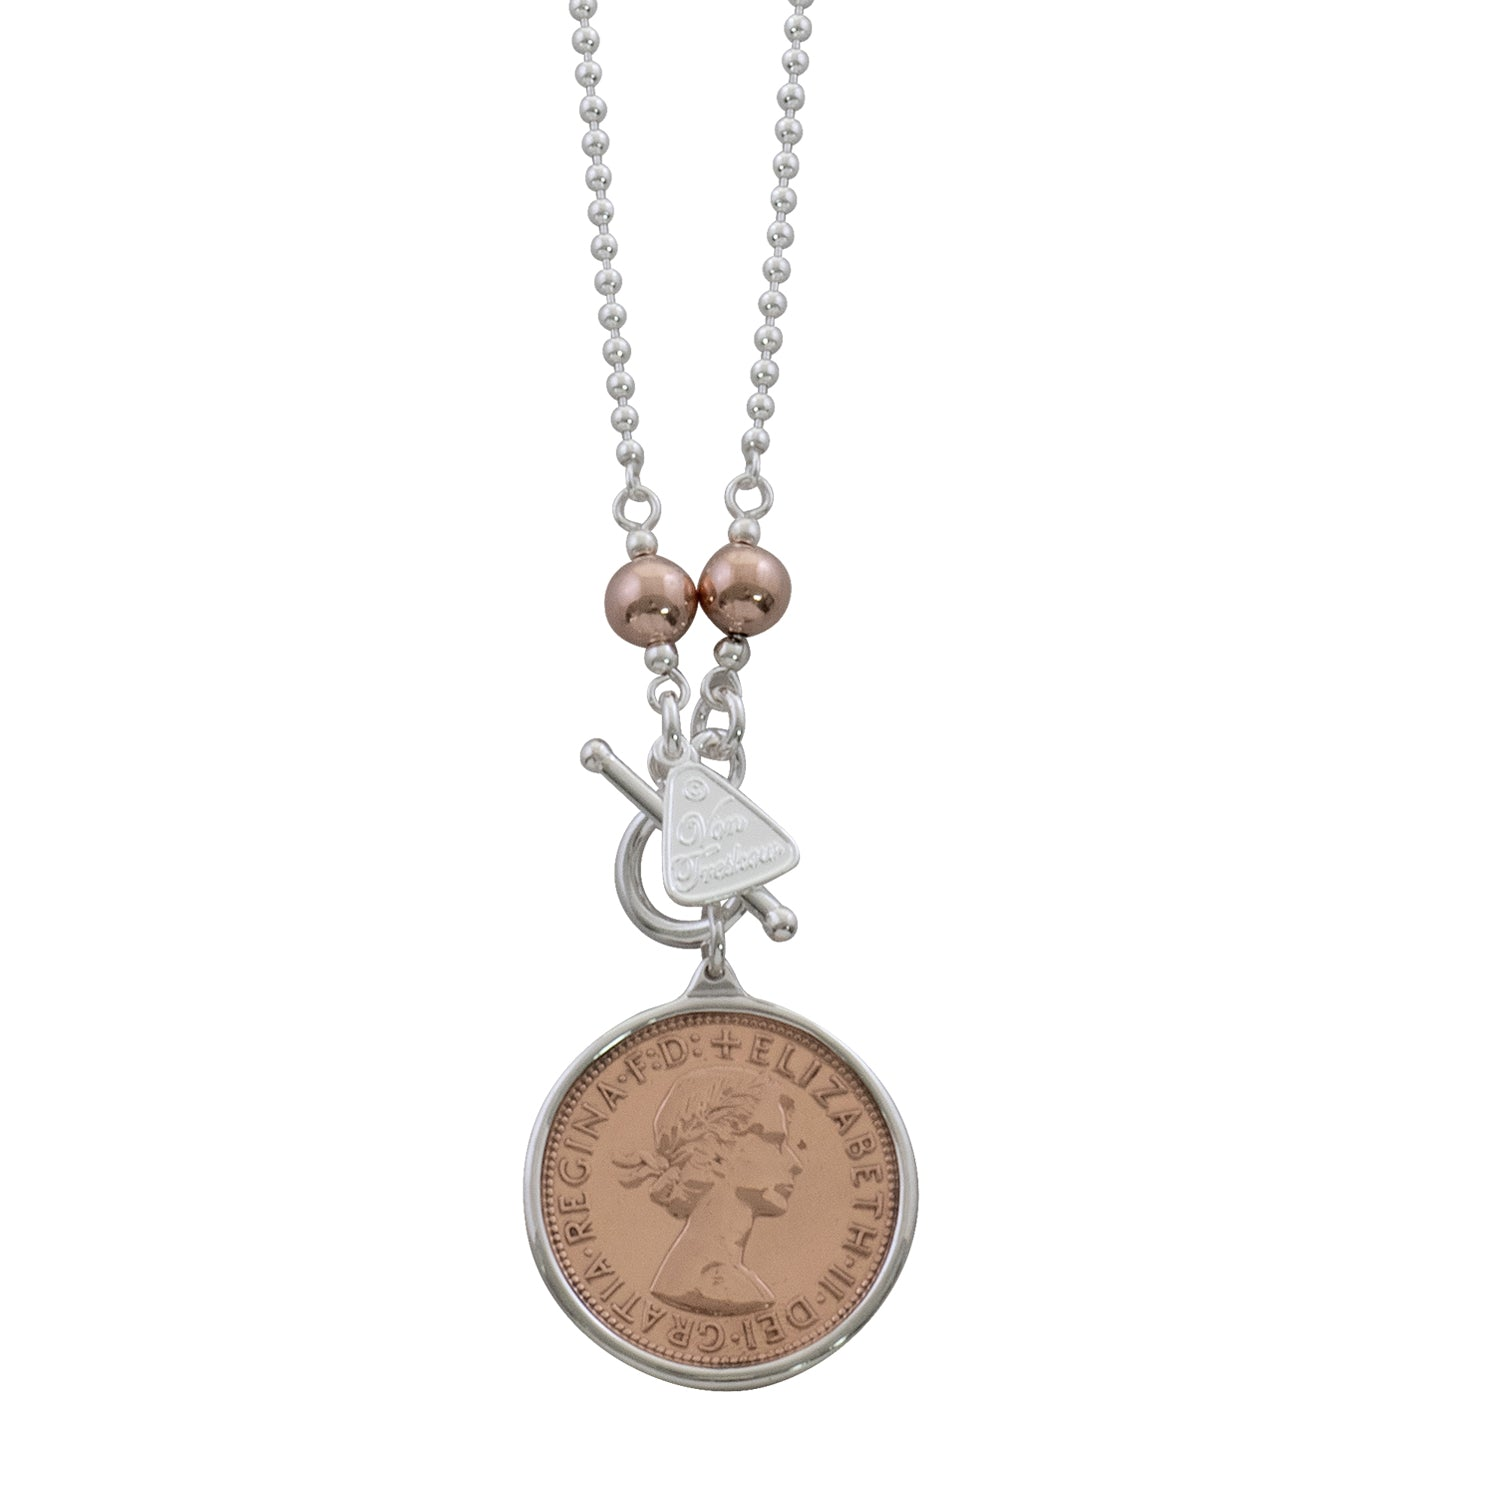 Von Treskow Sterling Silver Ball Chain Necklace w/ Rose Balls & 2 Tone Penny Coin - 80cm